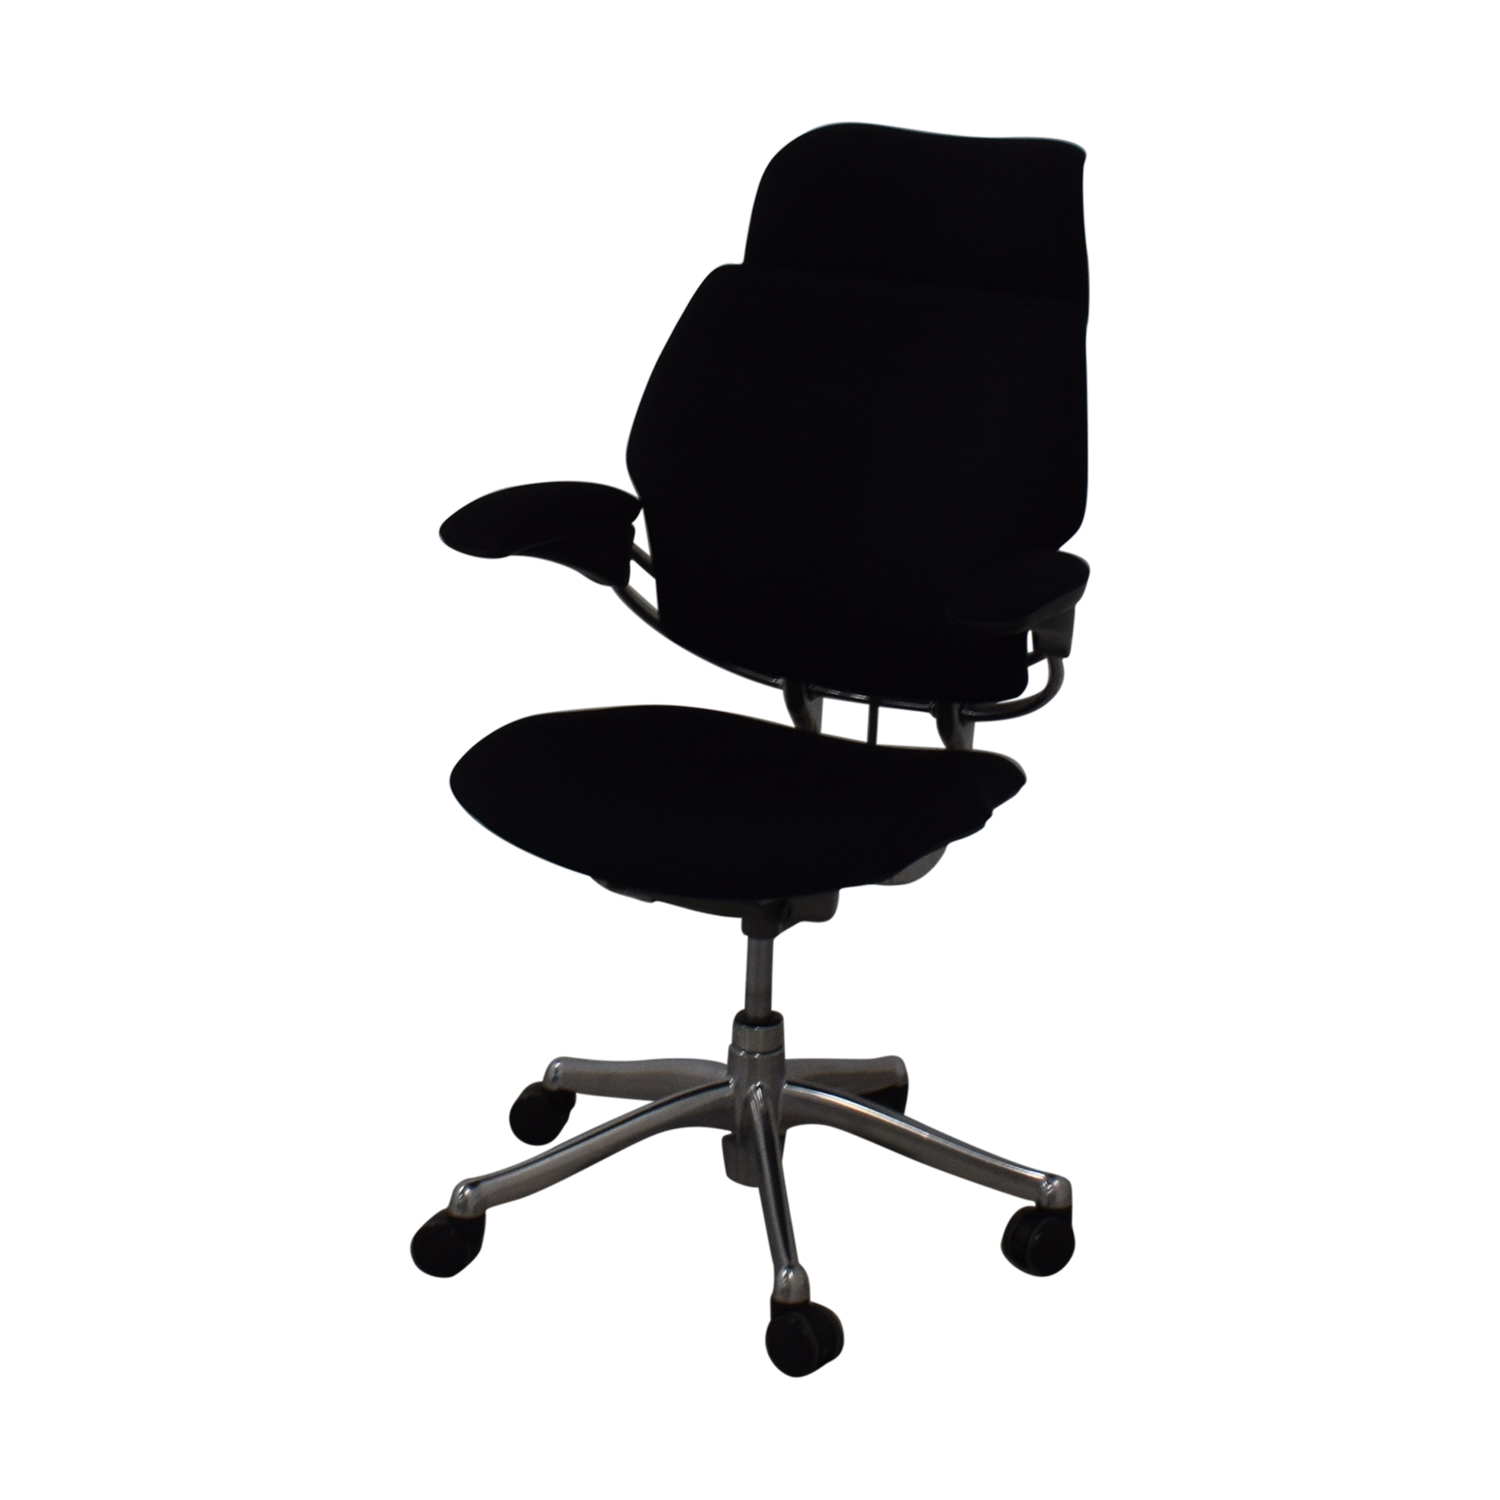 Humanscale Humanscale Desk Chair Home Office Chairs